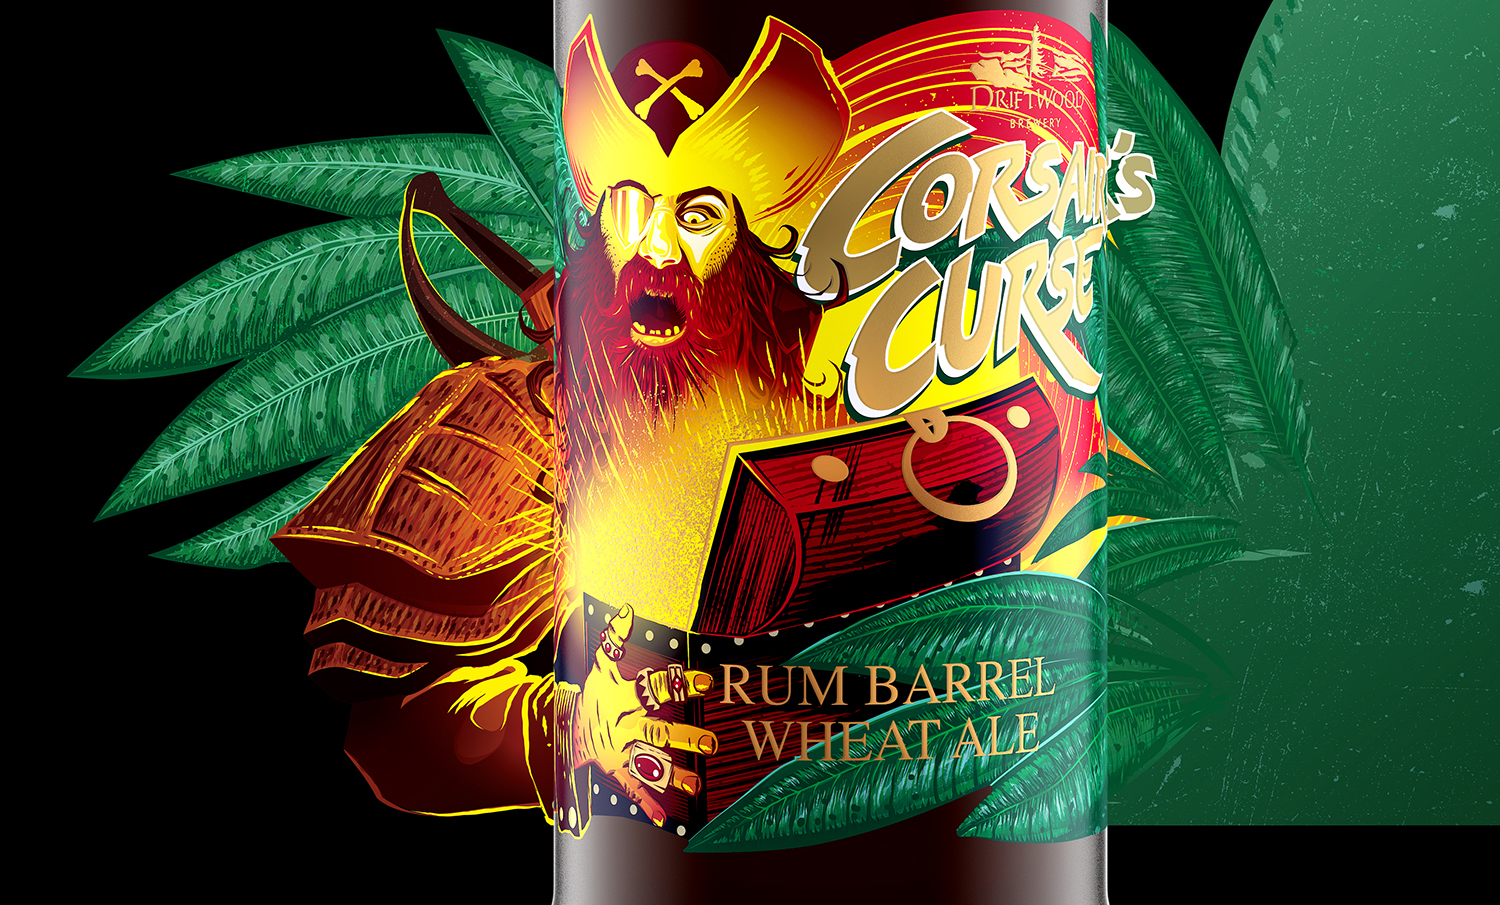 Label Design for Driftwood Brewery's Corsair's Curse Rum Barrel Wheat Ale Beer